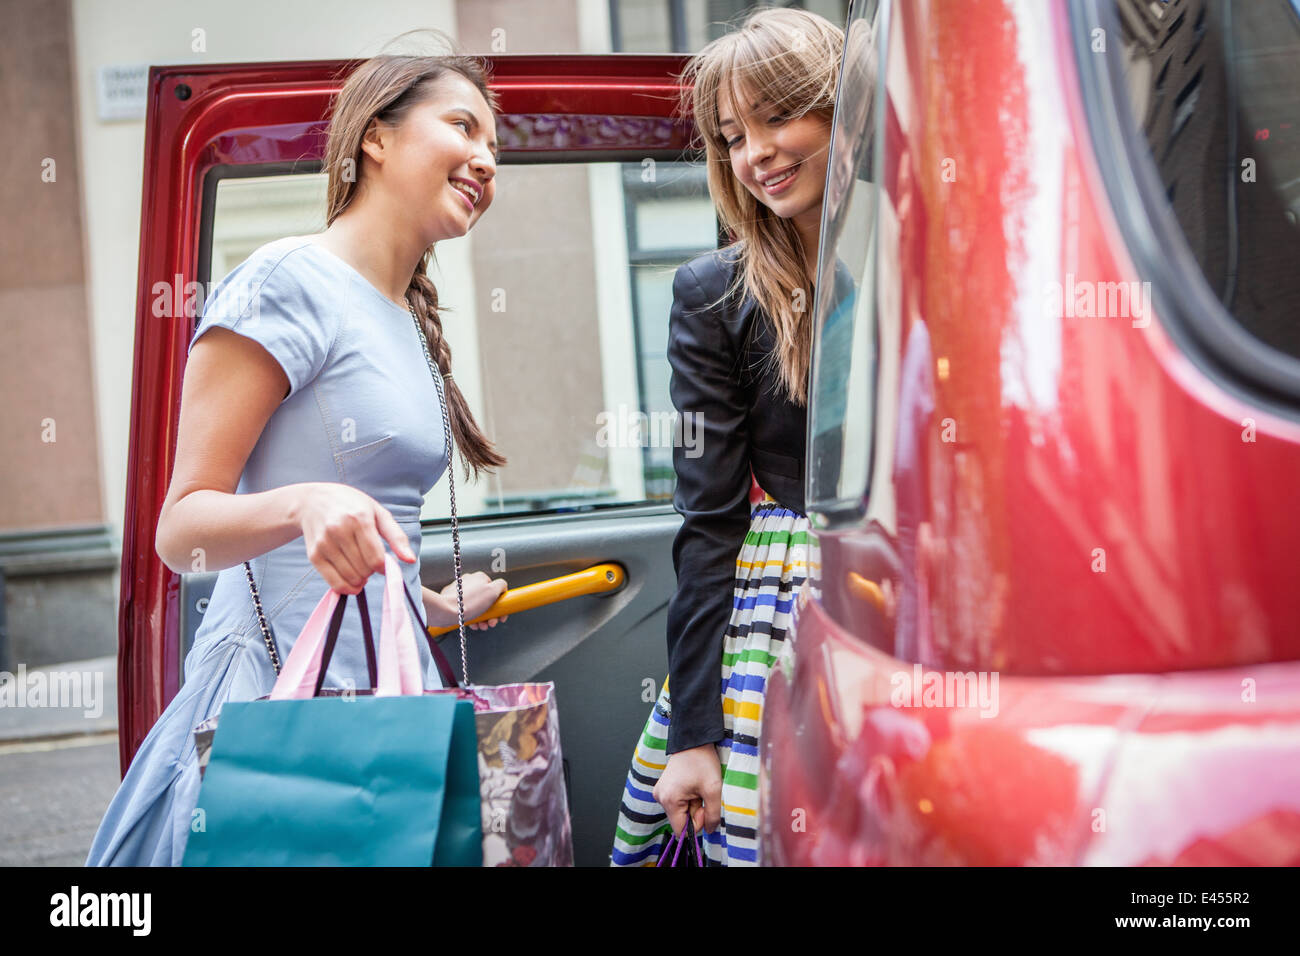 Young women getting into taxicab, carrying shopping bags - Stock Image